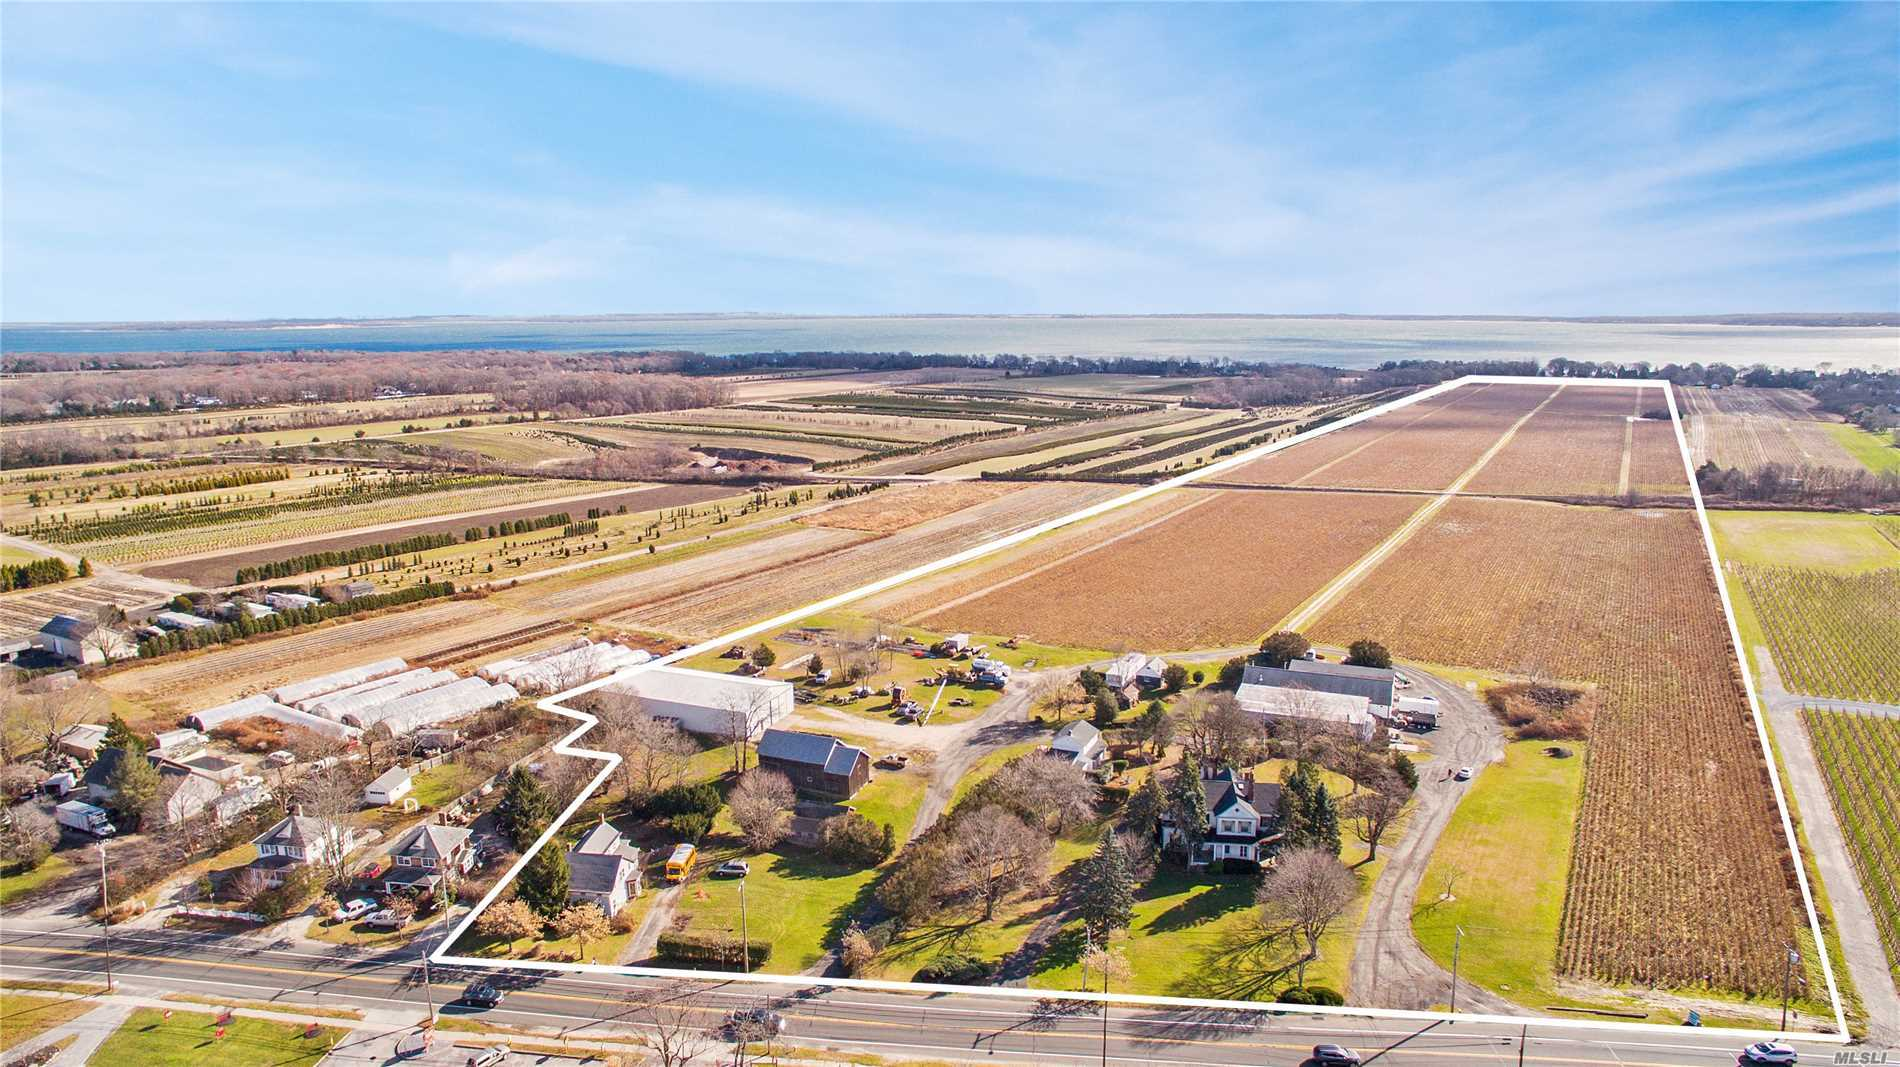 Sale Includes All 4 Lots, Must Be Sold As One. (Res.)48-03-11.00 = Taxes $13, 646.92/10.7 Acres, (Res.)48-3-10.00 = Taxes $26, 693.85/11.5 Acres, (Land)69-3-56.00 = Taxes $13, 700.42/24.5 Acres, (Land)69-3-57.00 = Taxes $8, 394, 32/24 Acres. (Res.)48-03-11.00 & (Land)69-3-57.00 = Mattituck/Cutchogue School District. (Res.)48-3-10.00 & (Land)69-3-56.00 = Riverhead School District. Land - Zoned Ra80, Residential - Zoned Rb80. Same As Mls# 3085060.